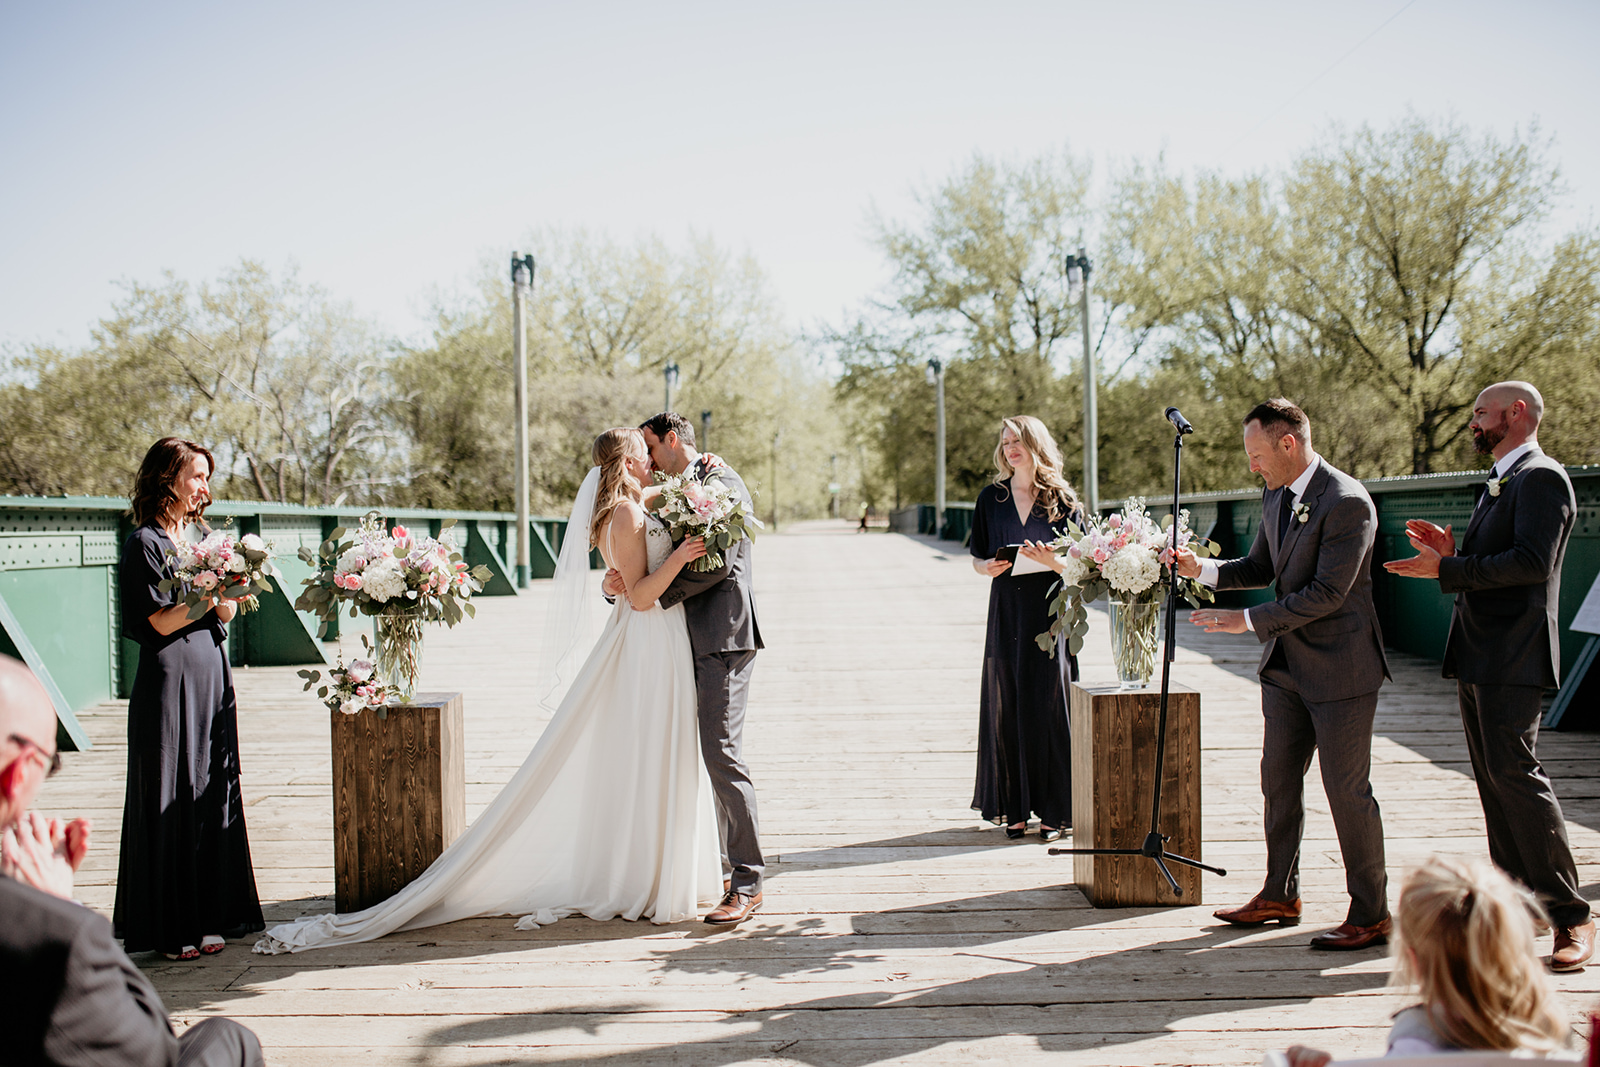 Wedding Ceremony at the Forks - Unique Winnipeg Wedding Venues